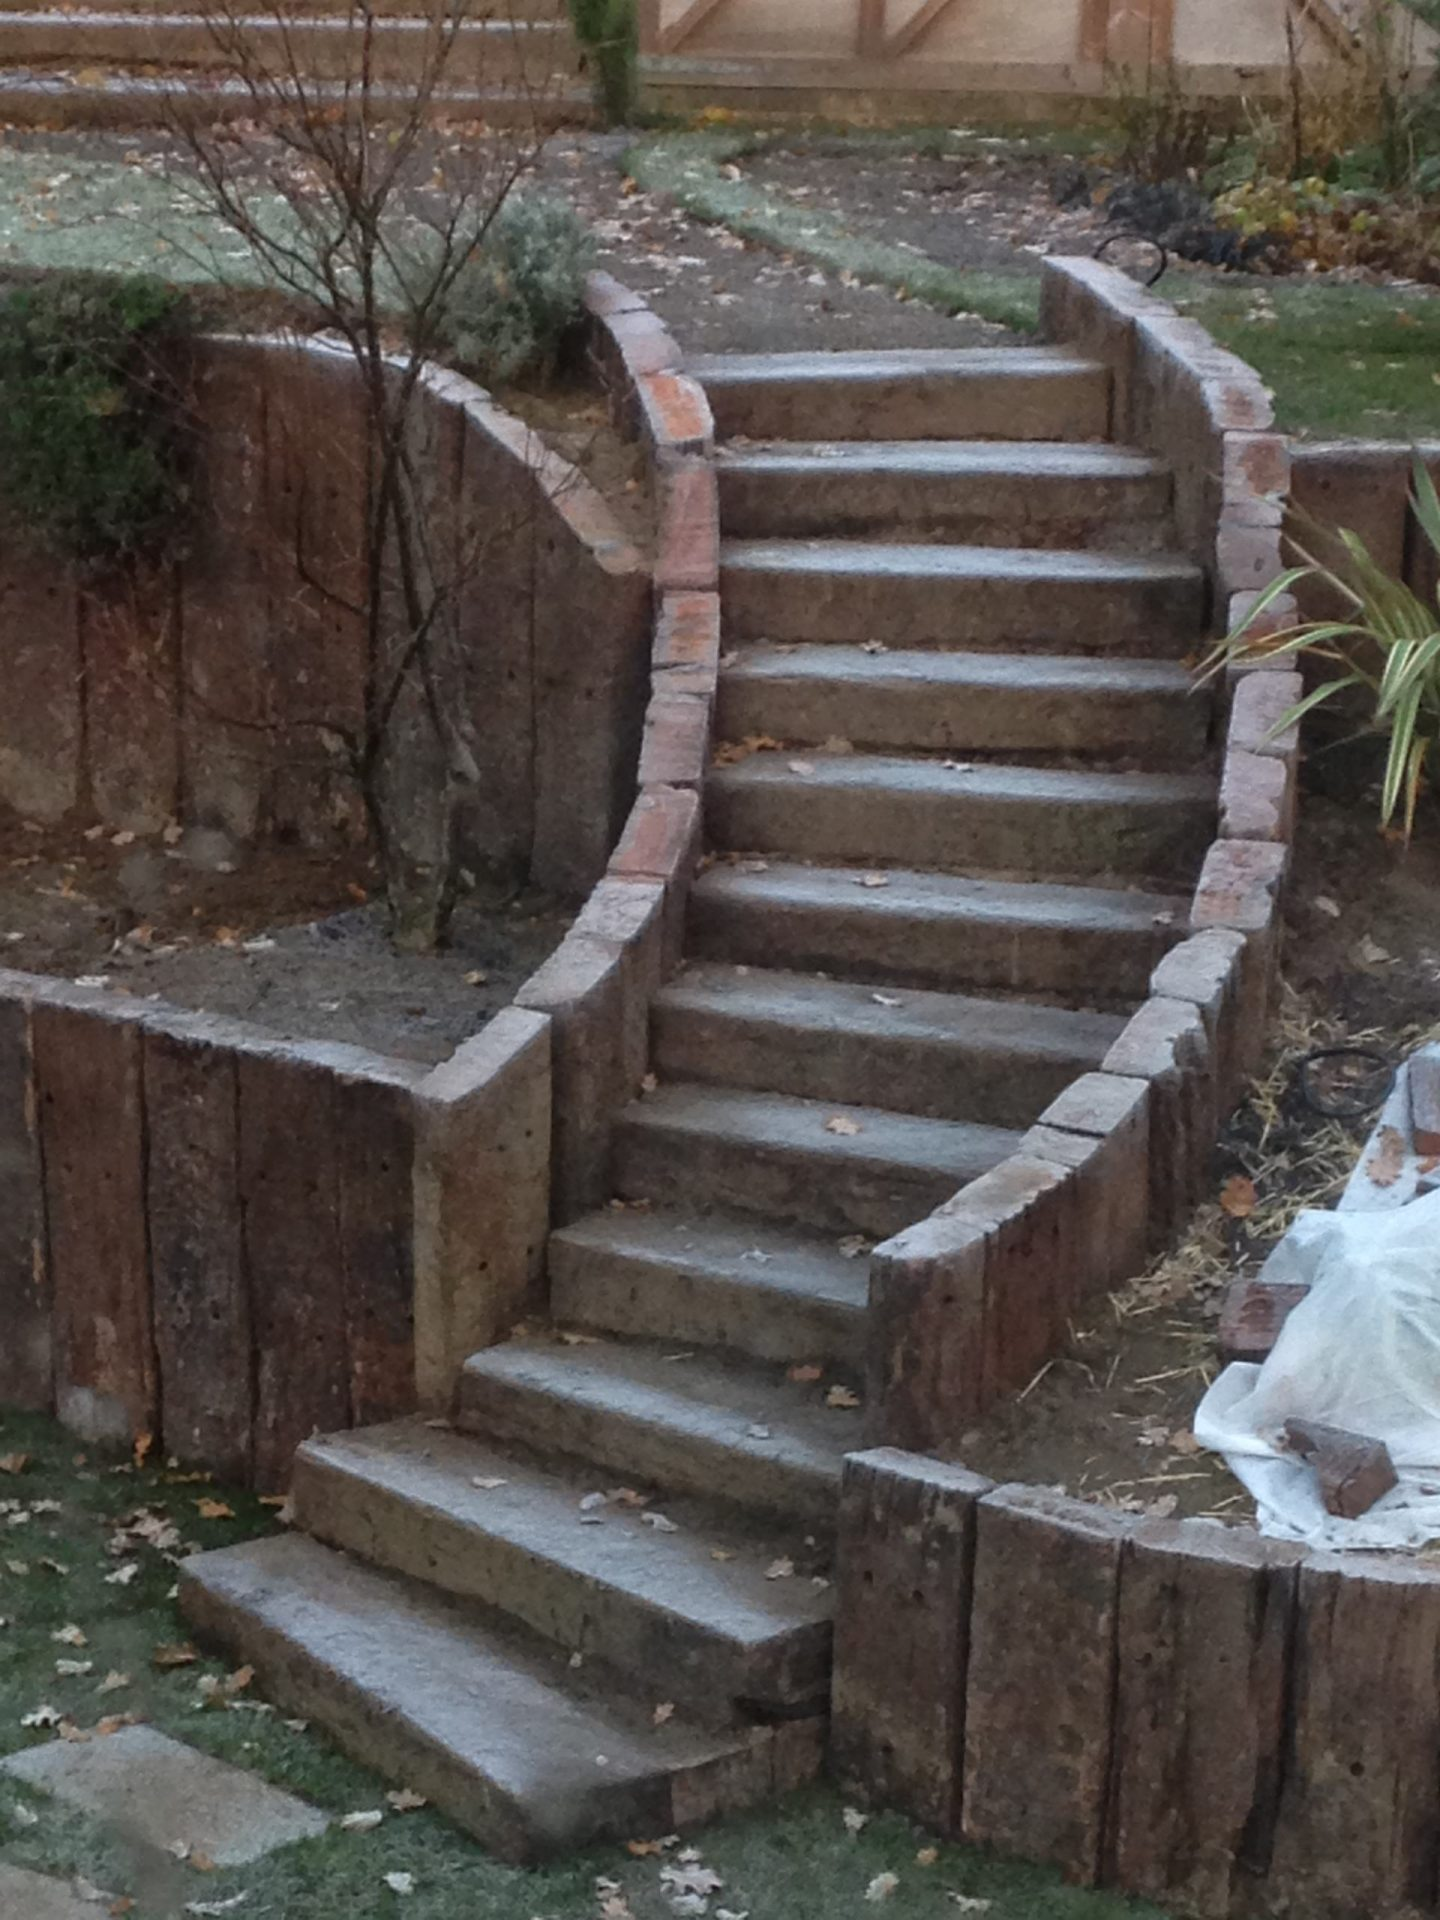 A sweeping garden staircase made of railway sleepers